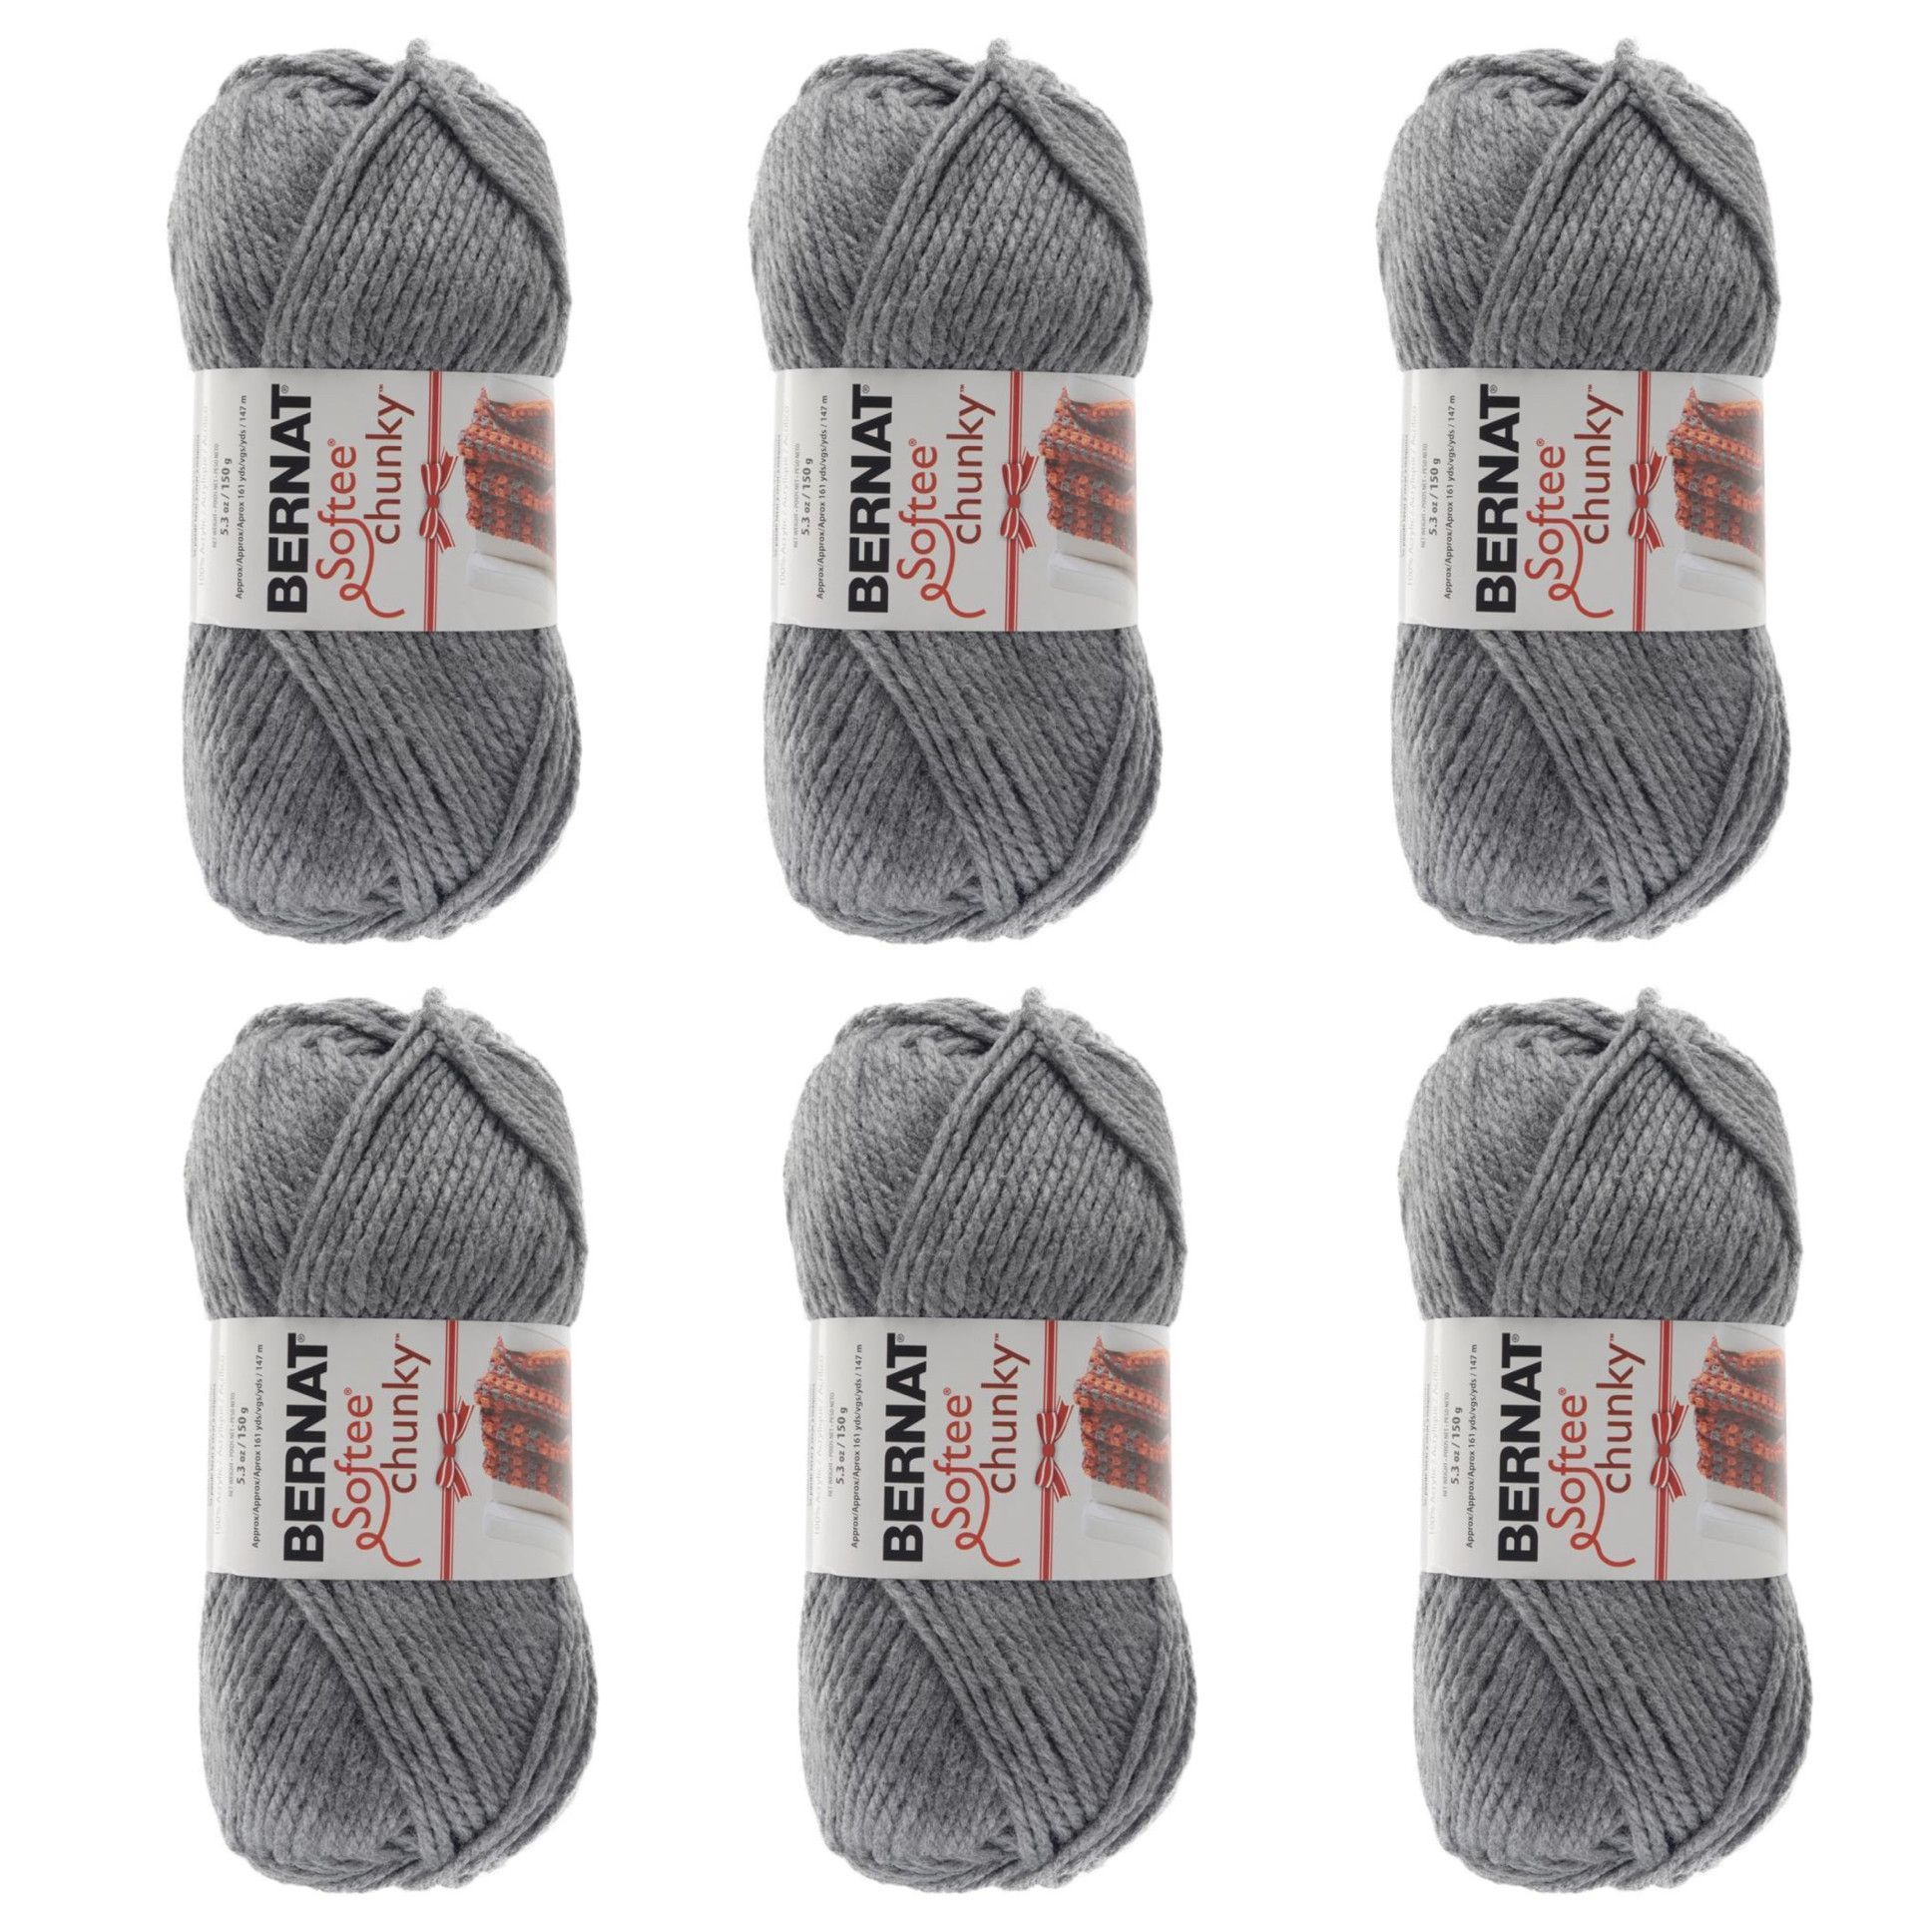 6 Skeins of Bernat Softee Chunky True Grey Yarn | Products | Pinterest